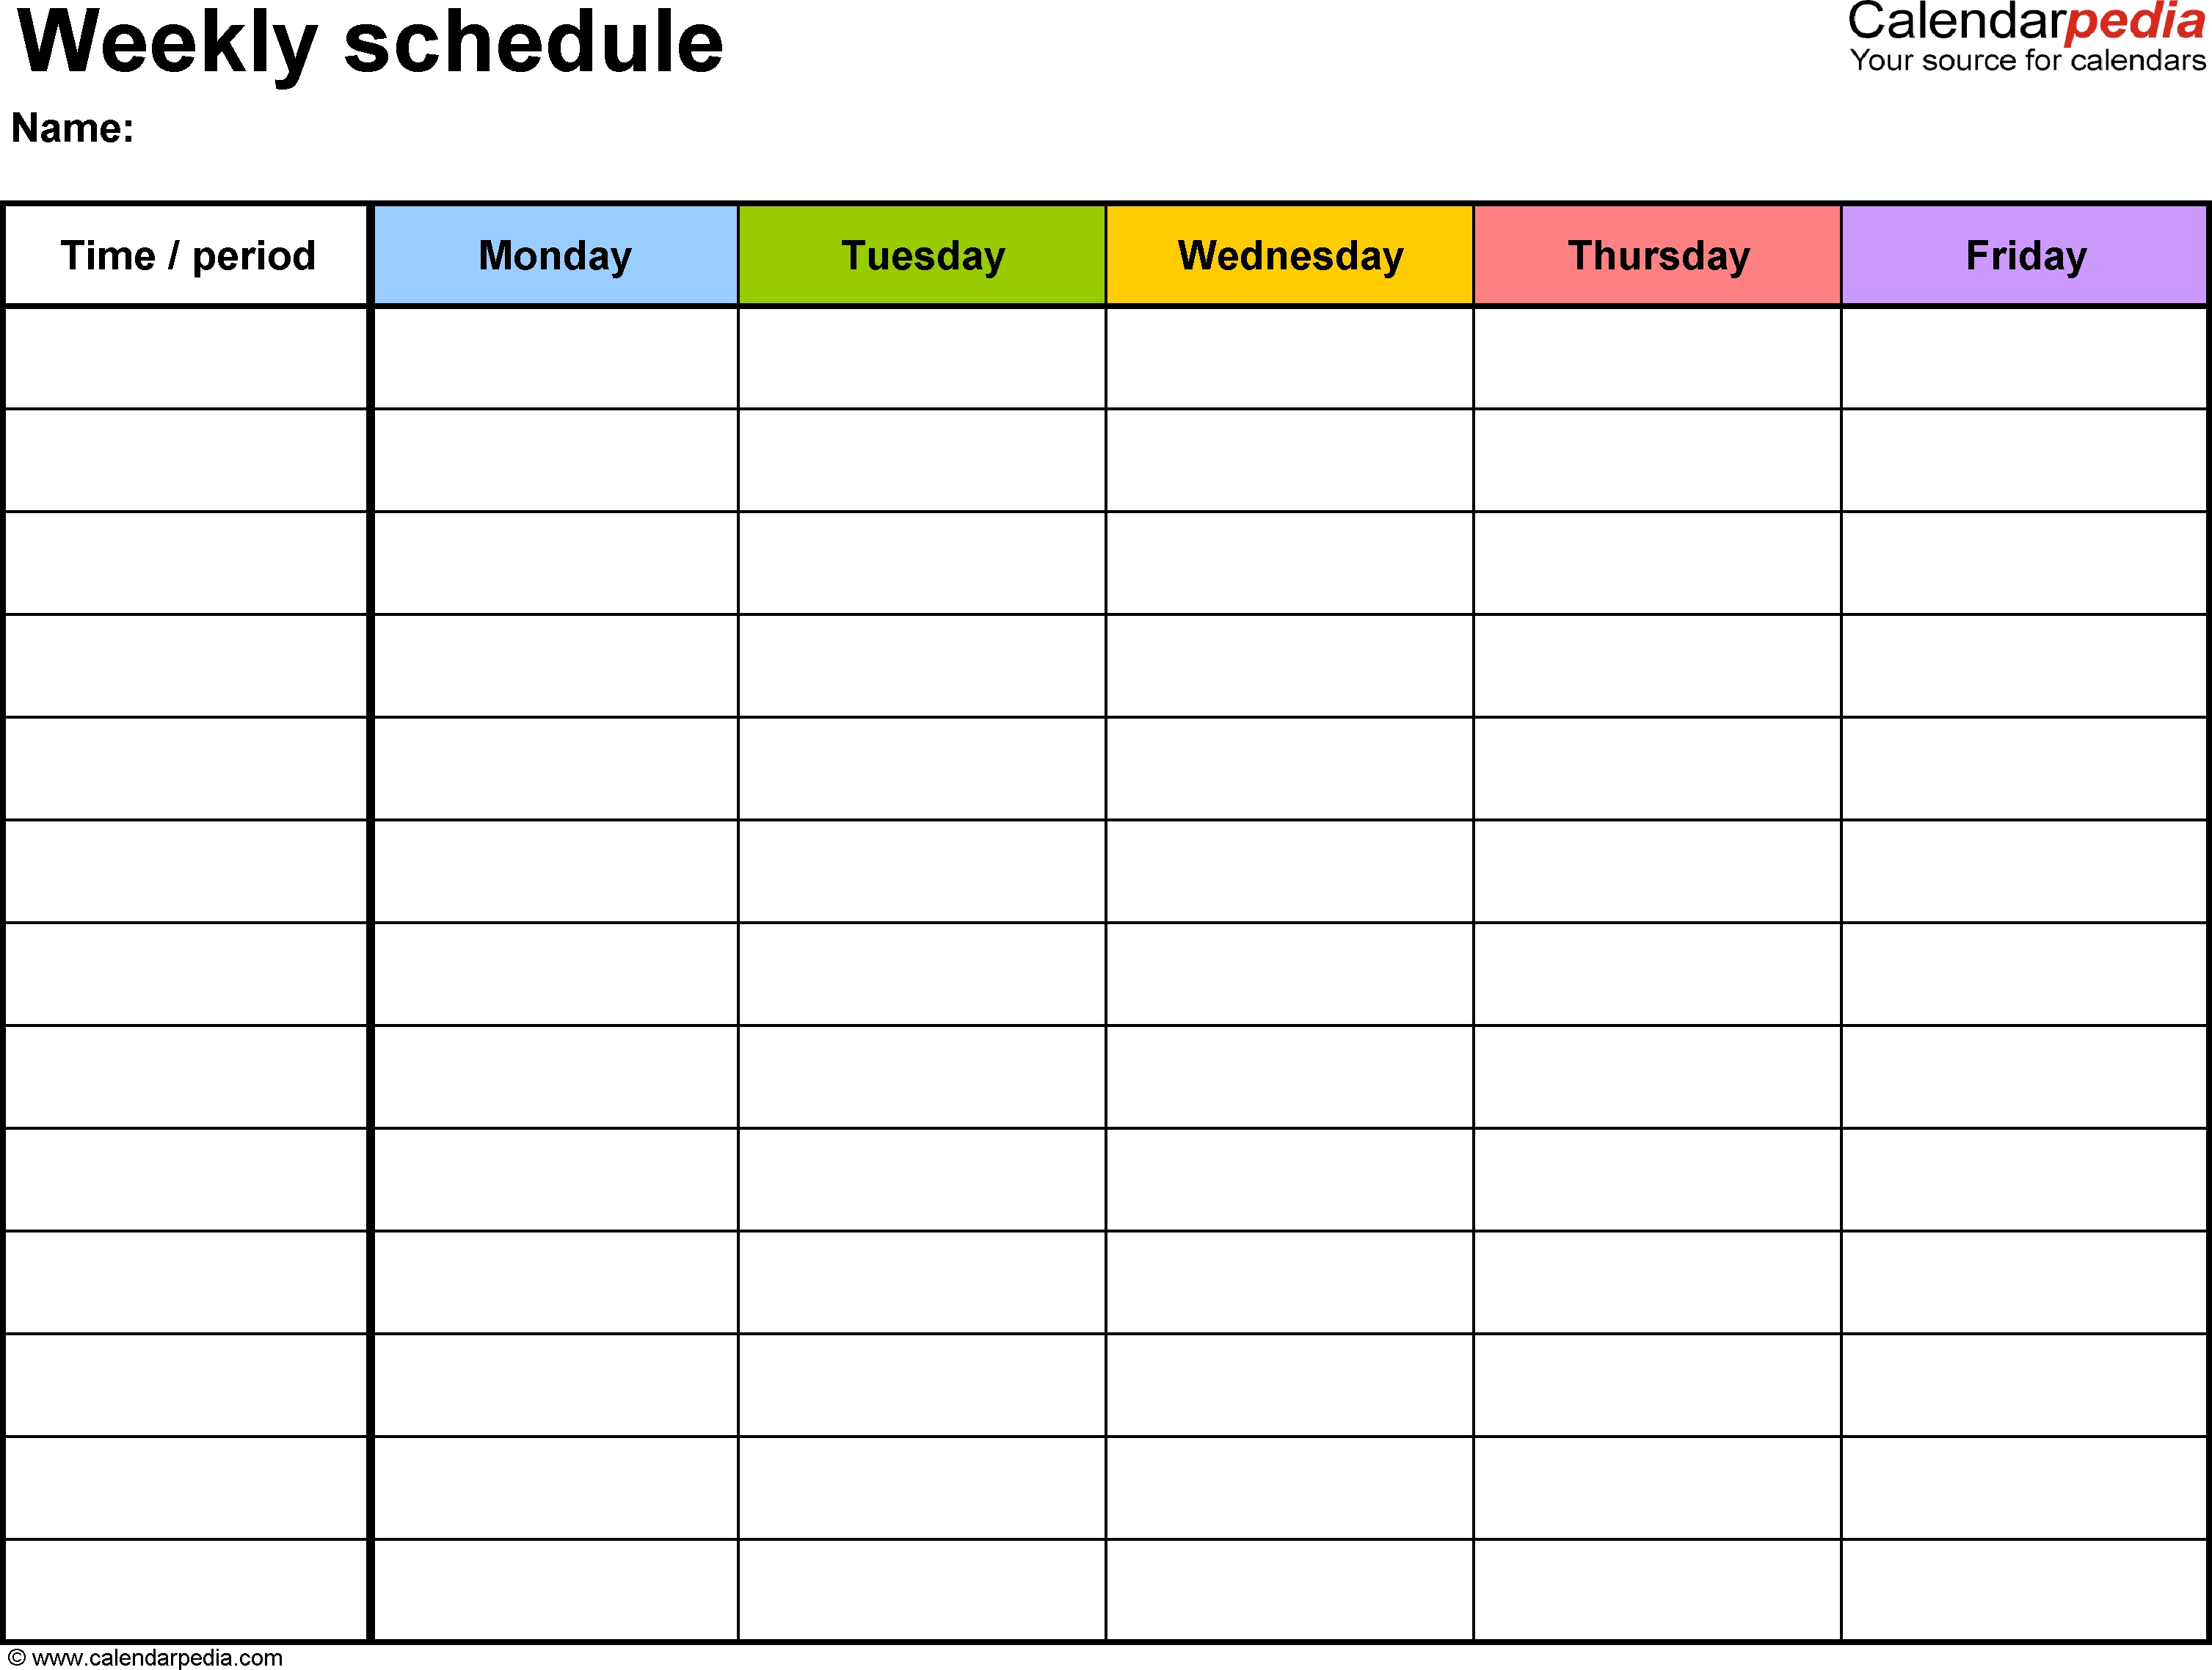 Free Weekly Schedule Templates For Word - 18 Templates  Printable Weekly Planner With Times